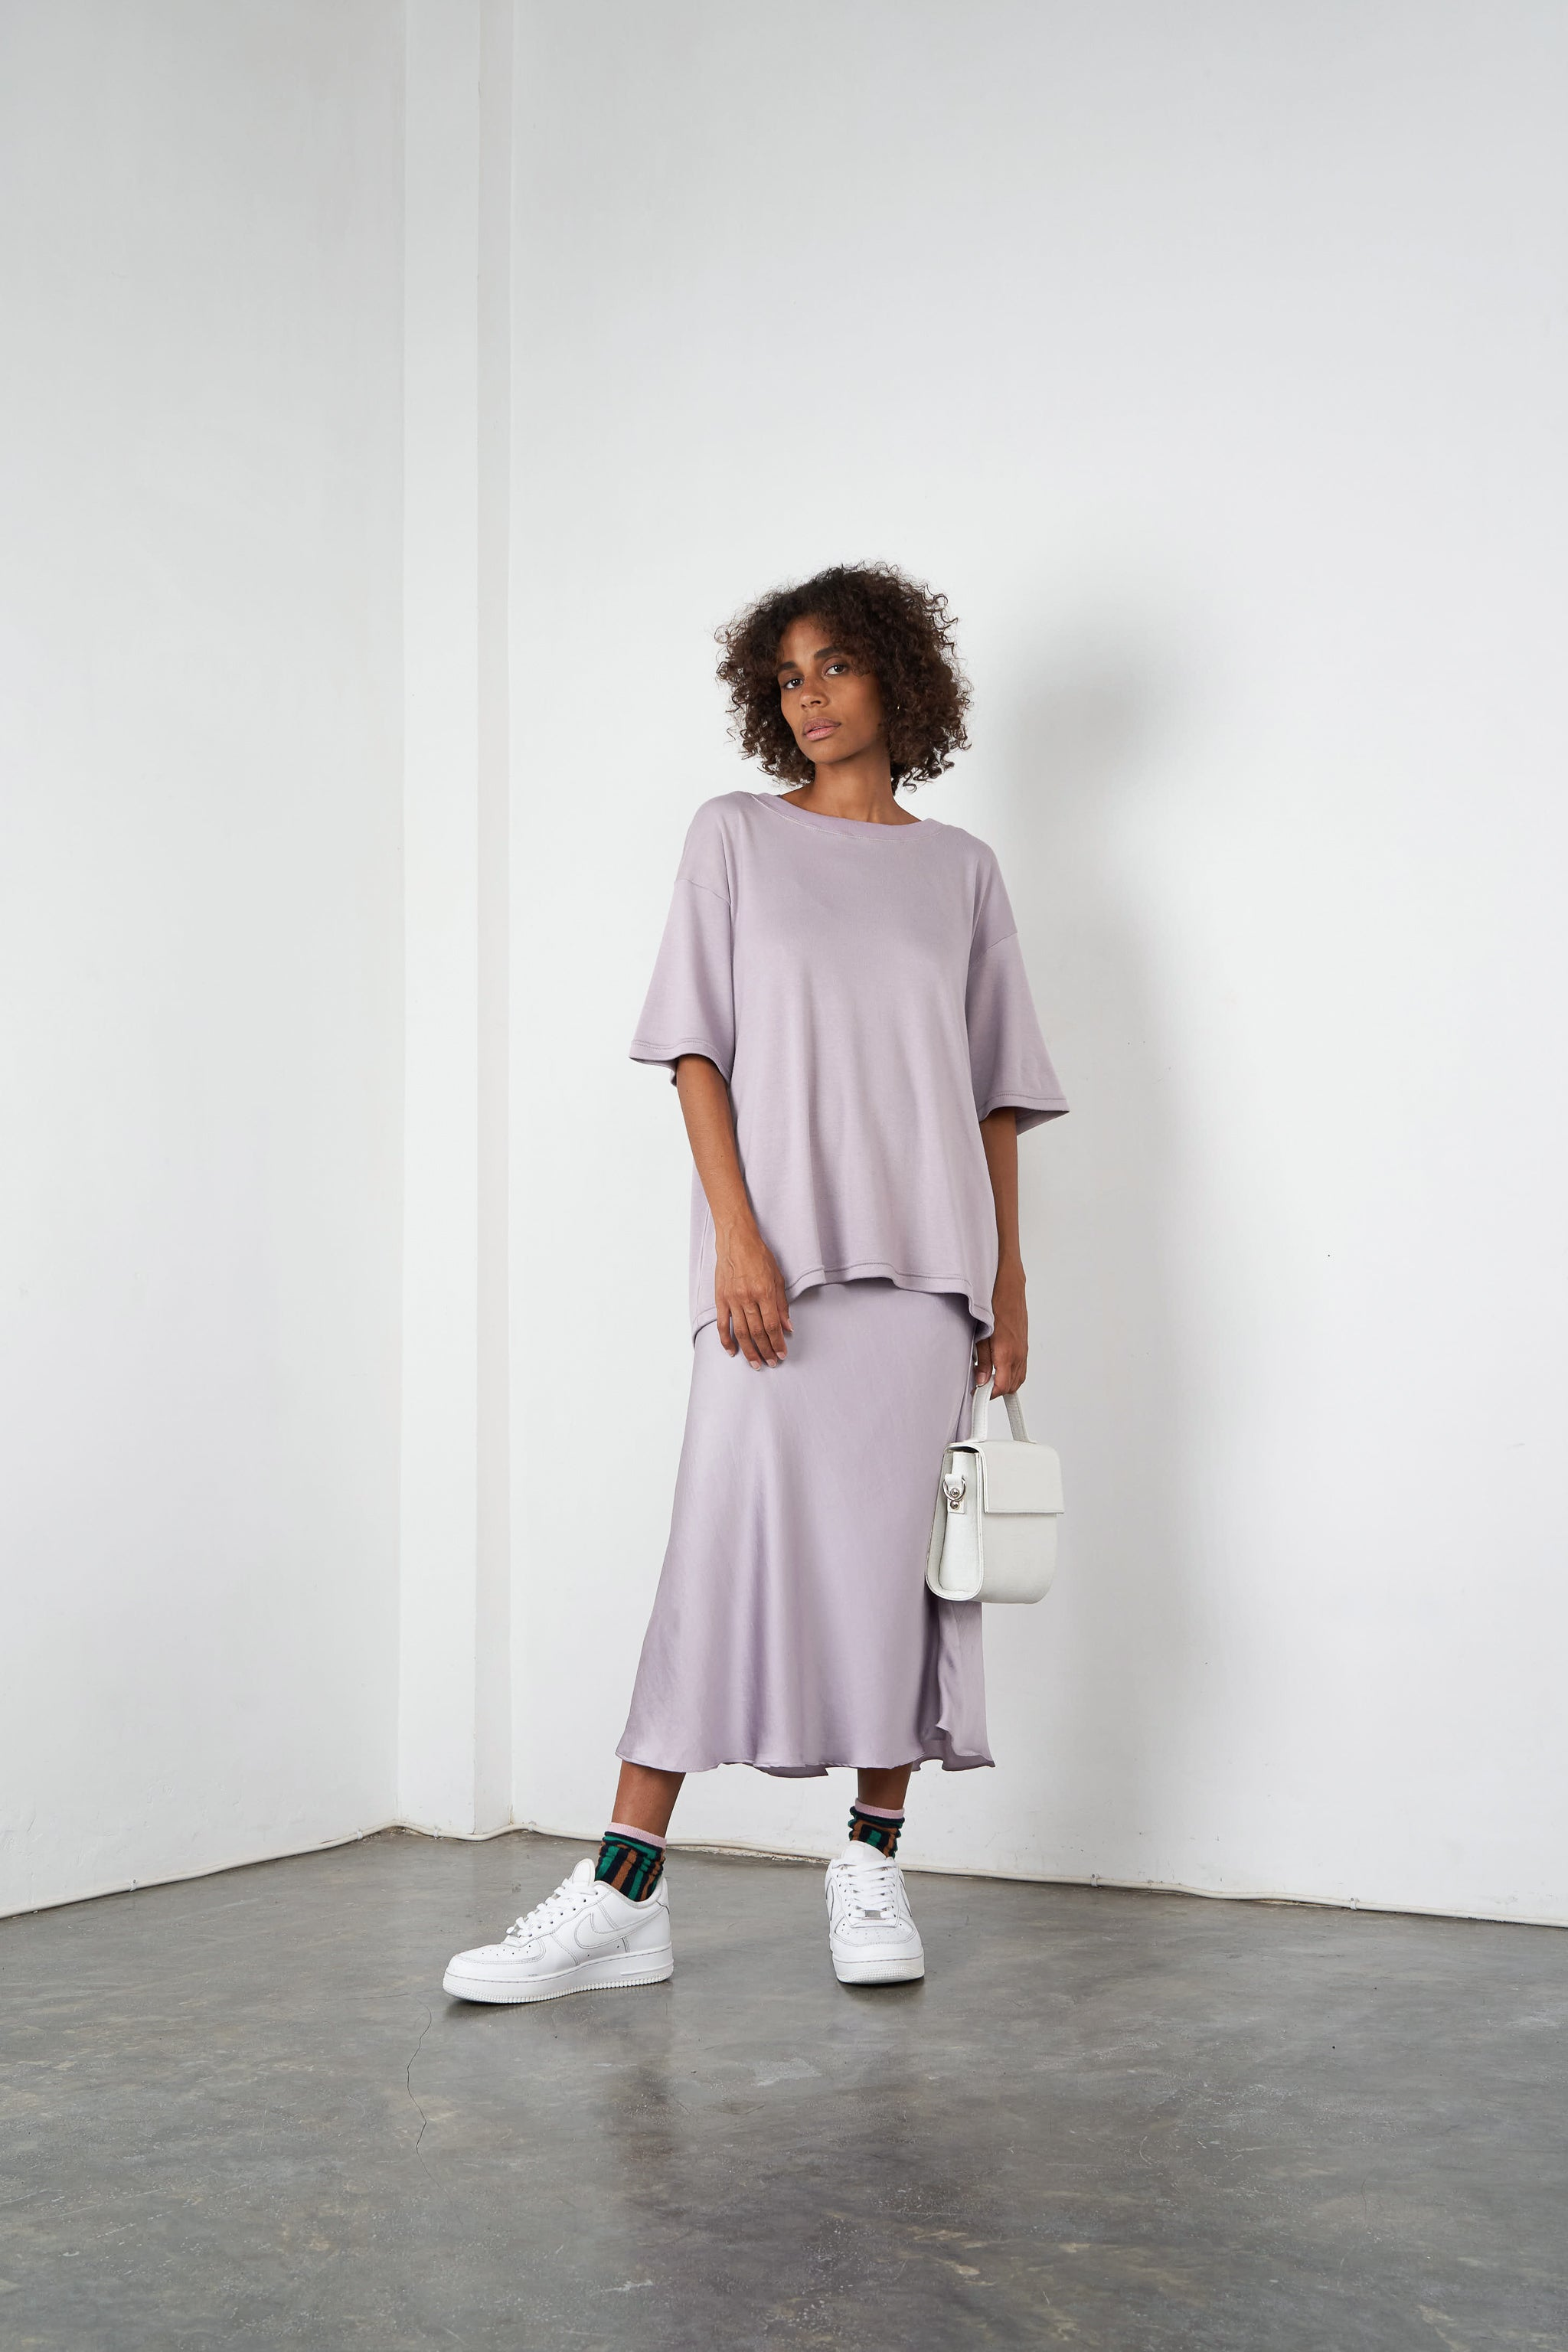 Arthur Apparel AW20 Womenswear Australian Fashion Cotton Oversized Tshirt Pastel Purple Lilac